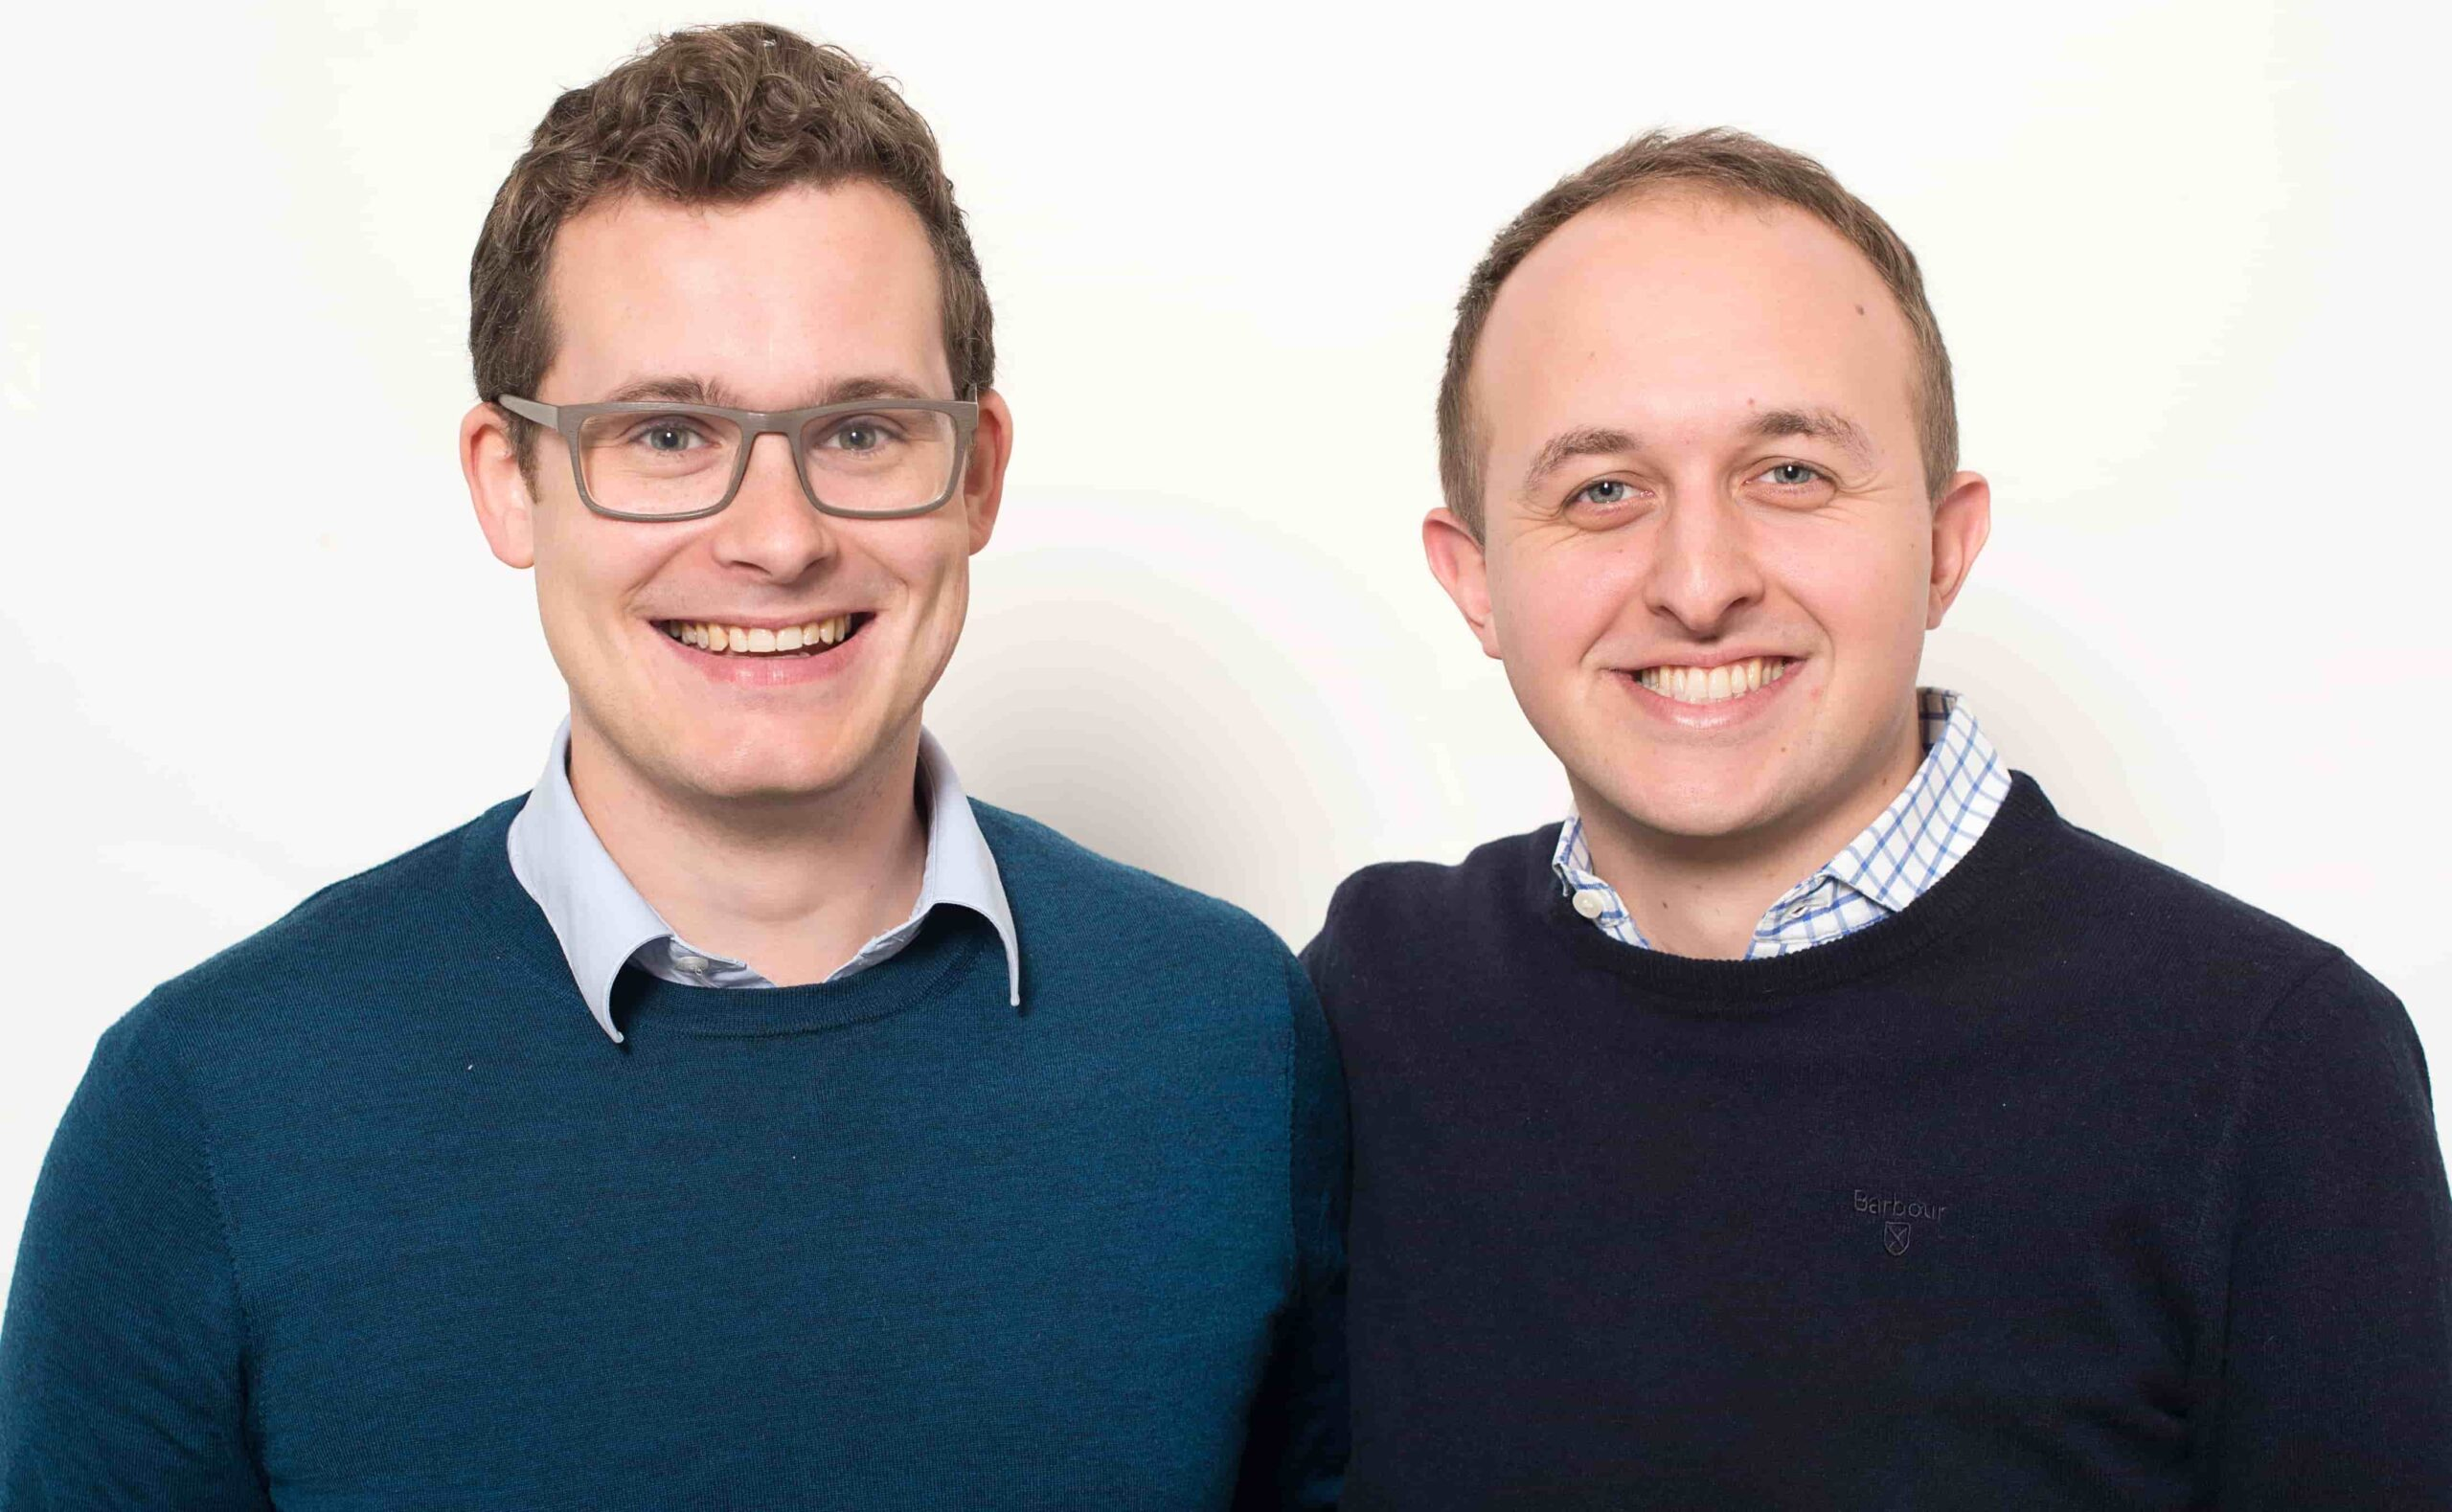 Aide Data (t/a Personify XP) secures £550k Pre-Seed investment led by Founders Factory